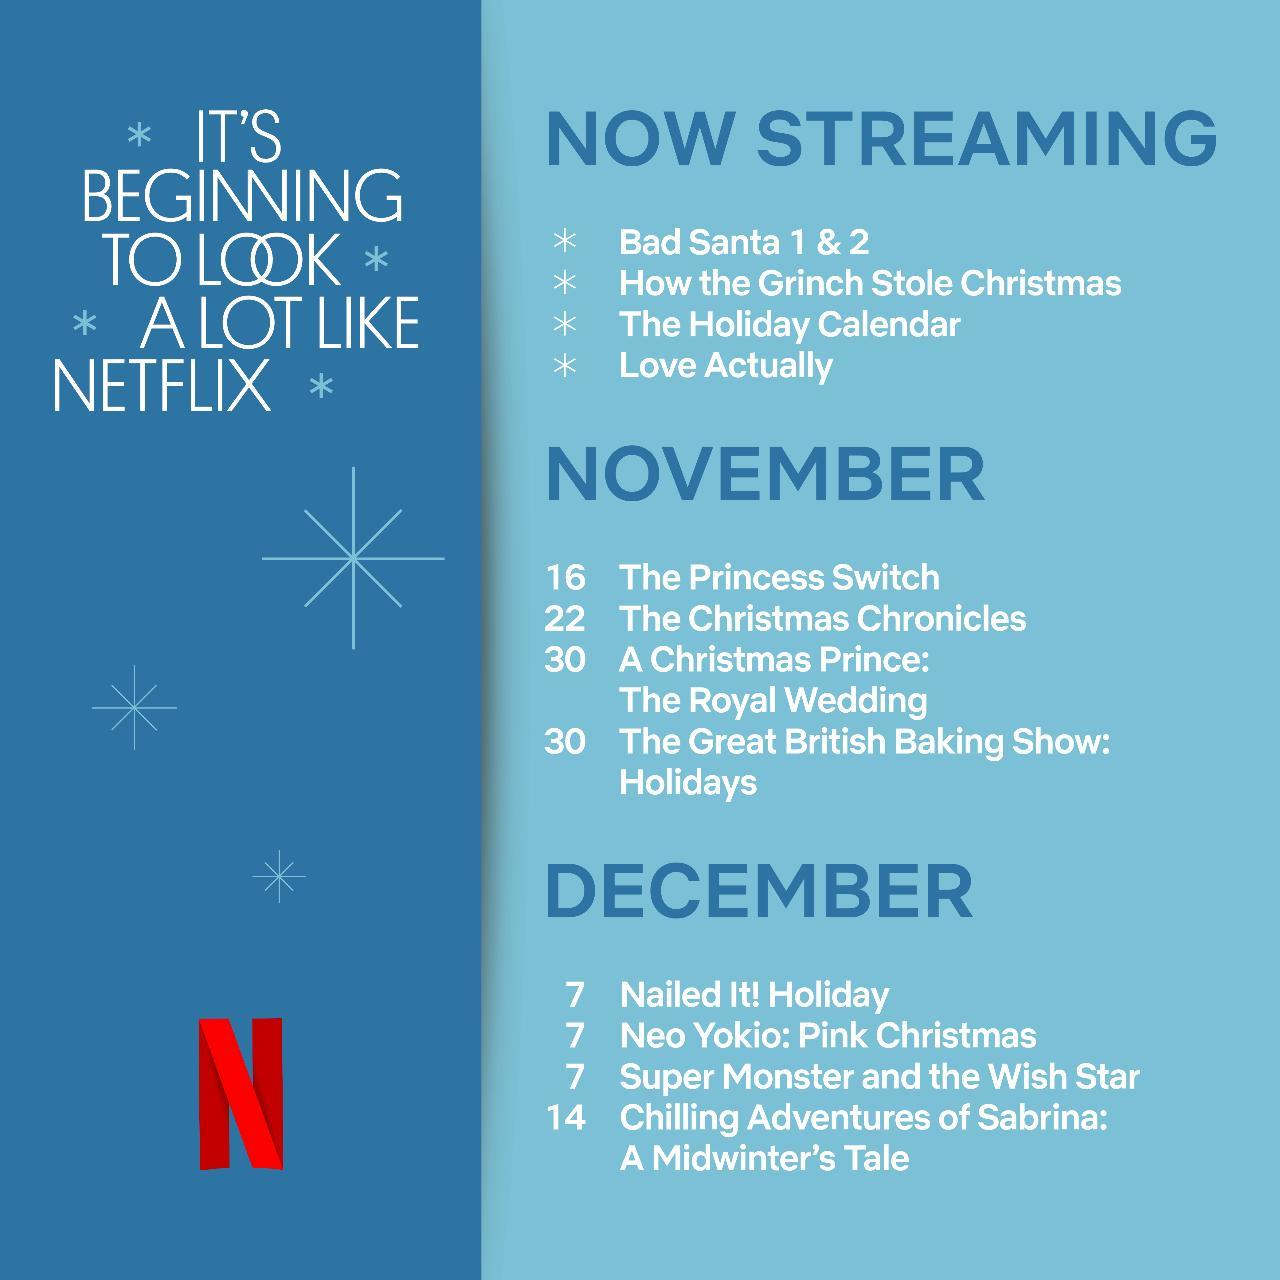 Netflix's Complete Guide To What To Watch This Holiday Season